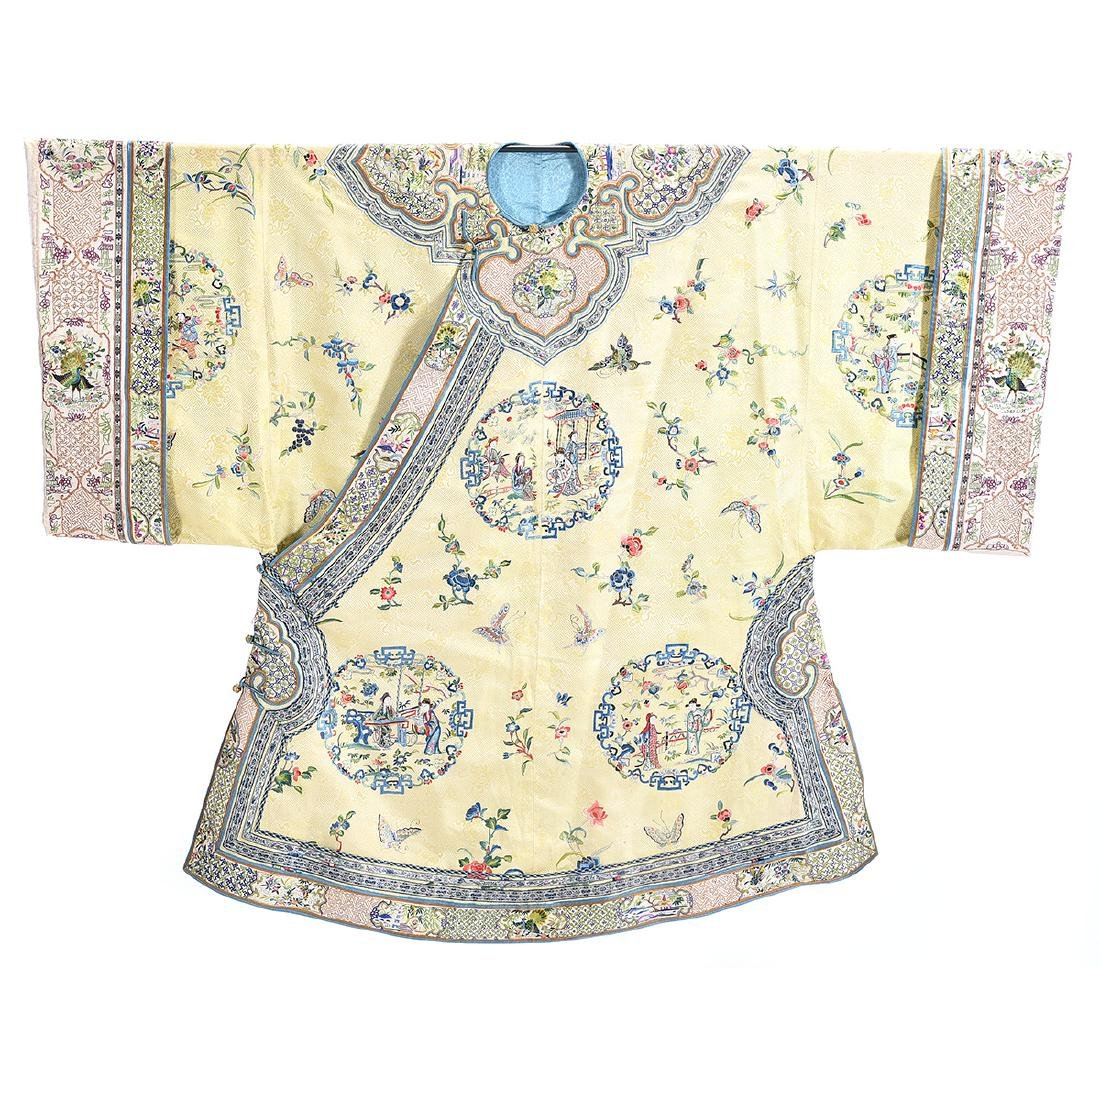 Embroidered Silk Yellow Ground Lady's Robe